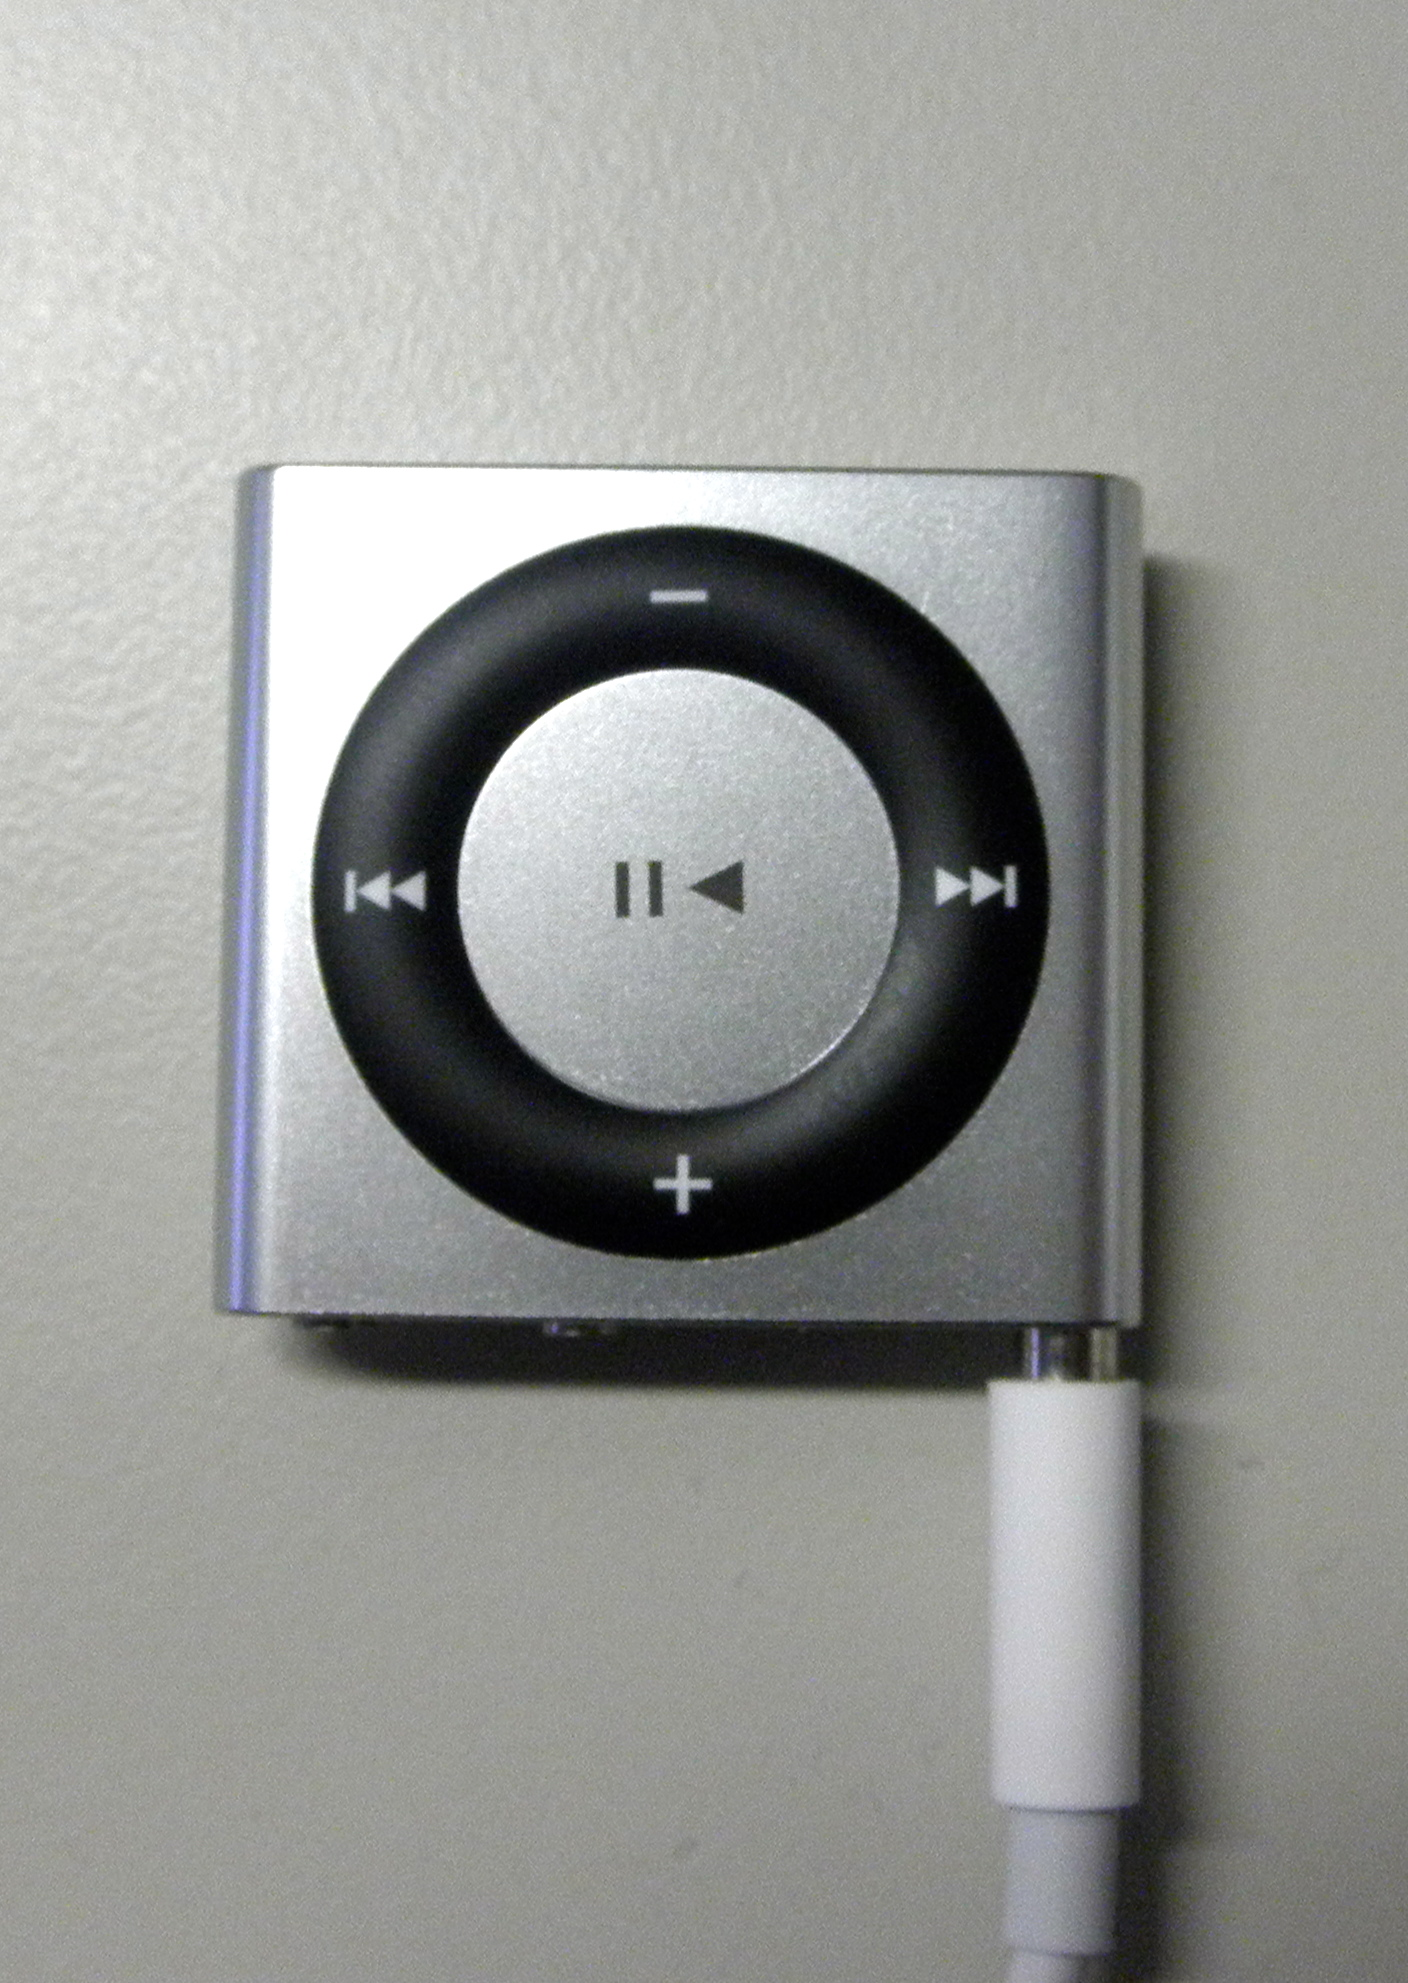 ipod shuffle 4th generation not seen in itunes apple. Black Bedroom Furniture Sets. Home Design Ideas